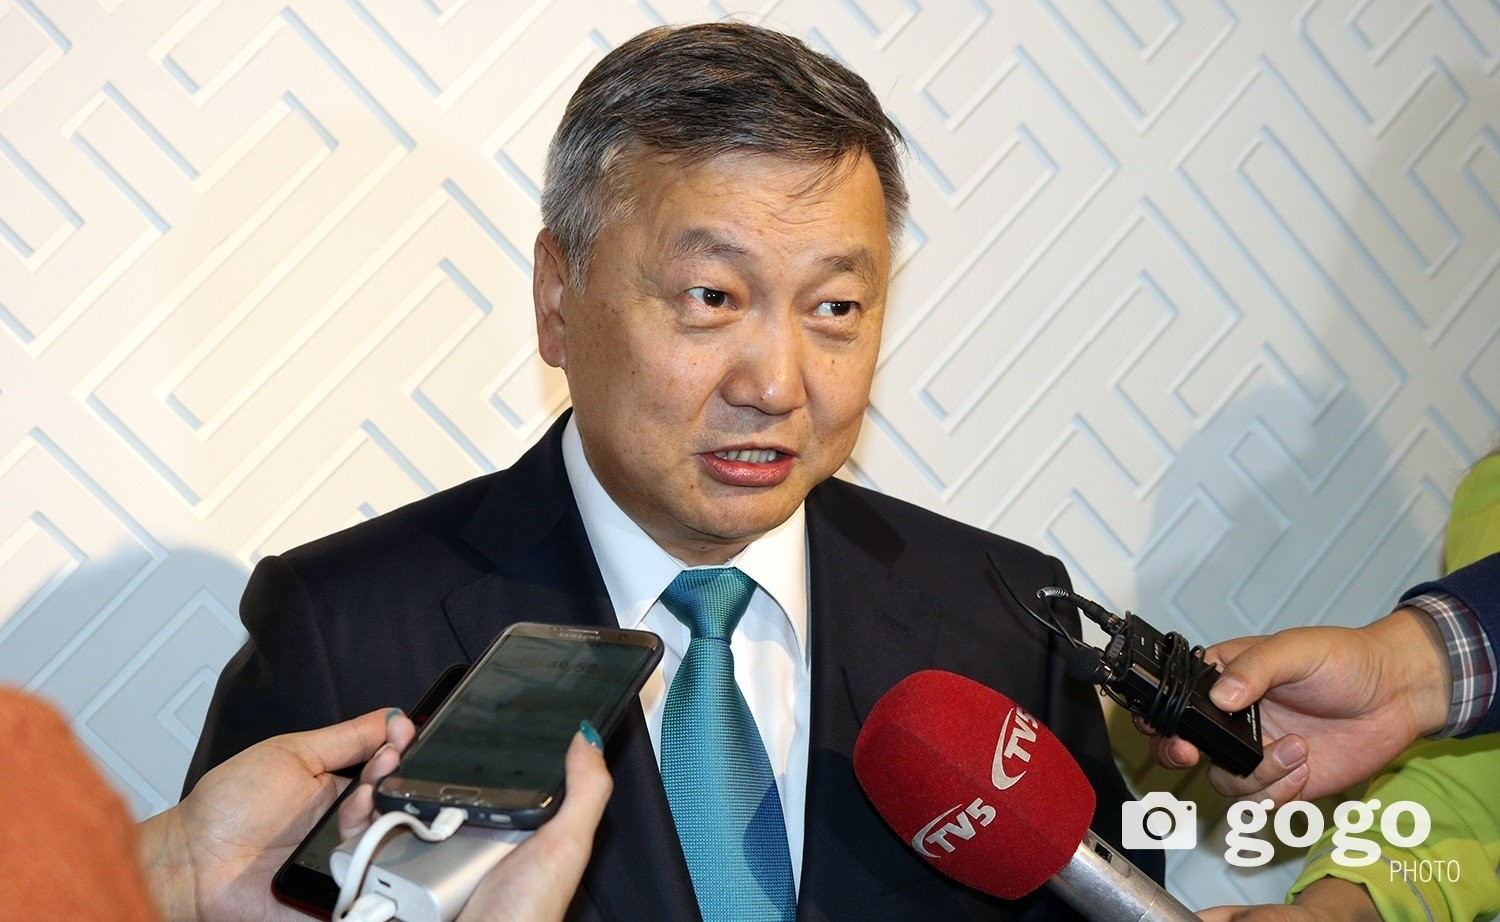 Z.Enkhbold, Chief of the Office of the President of Mongolia